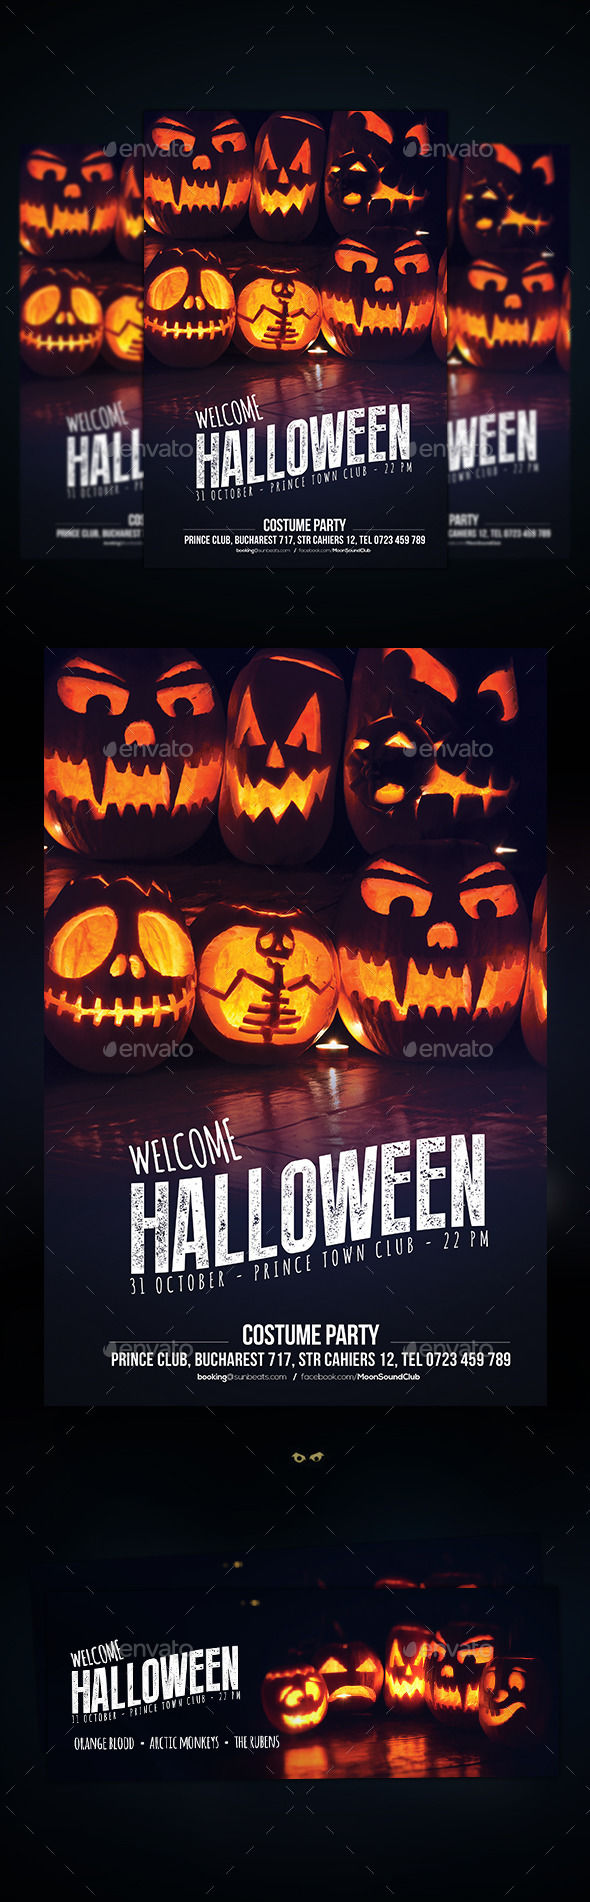 Halloween Flyer by DusskDesign (Halloween party flyer)